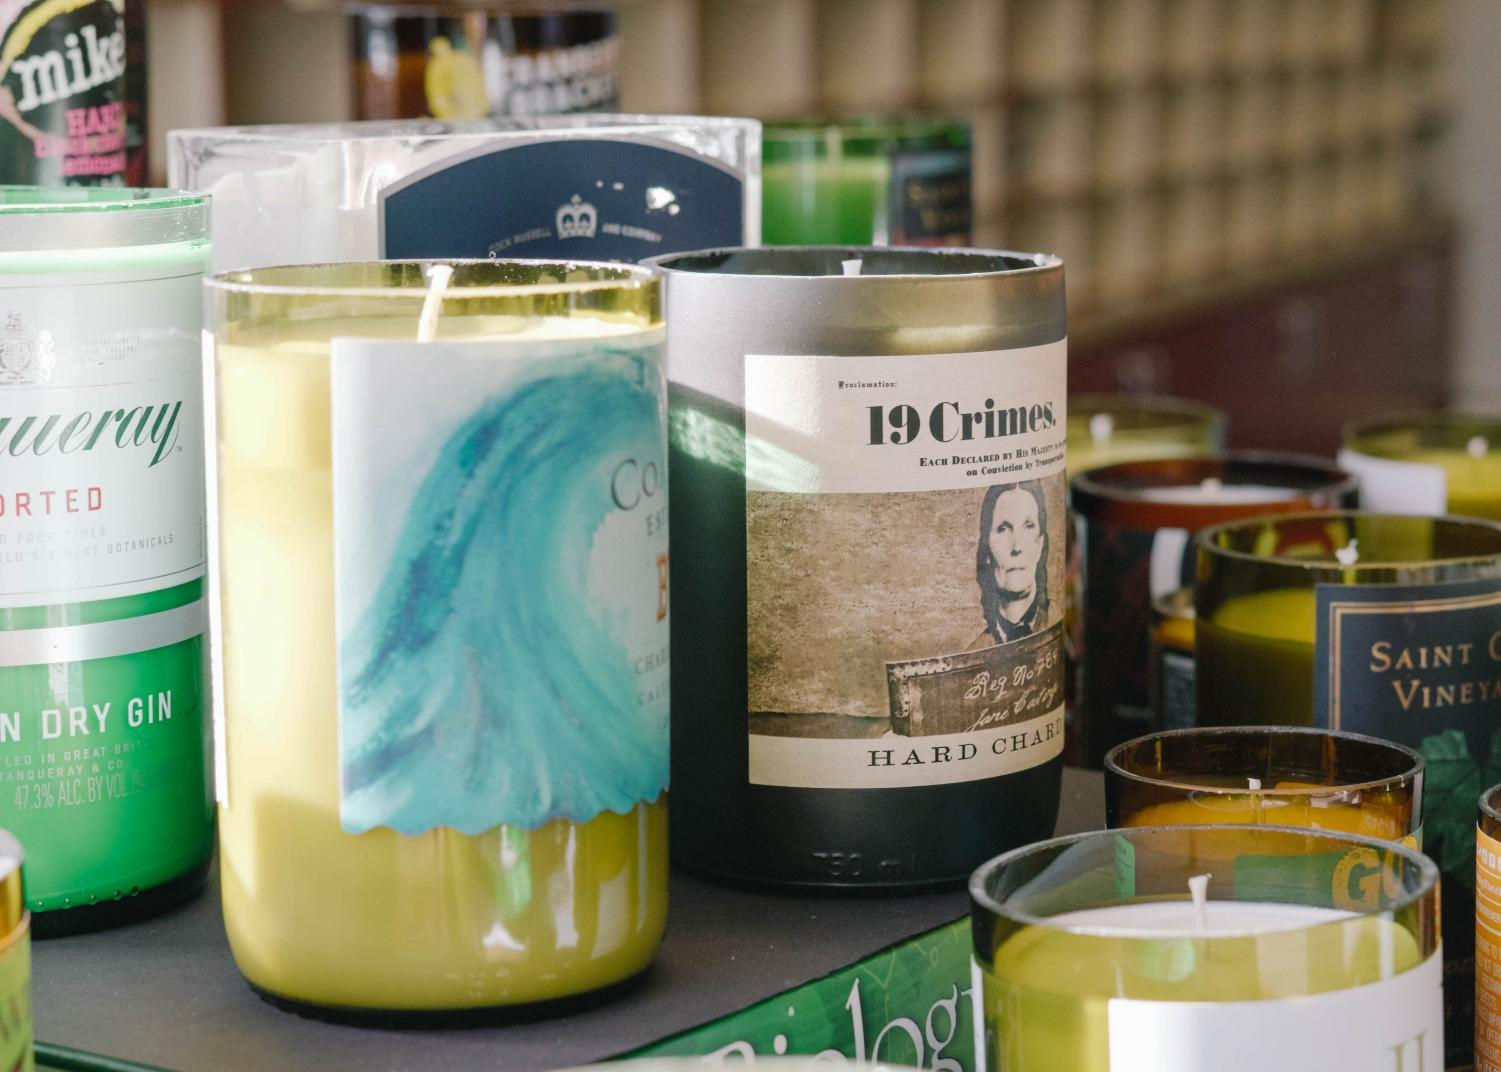 Lyons uses recycled bottles to make the mold for his candles.